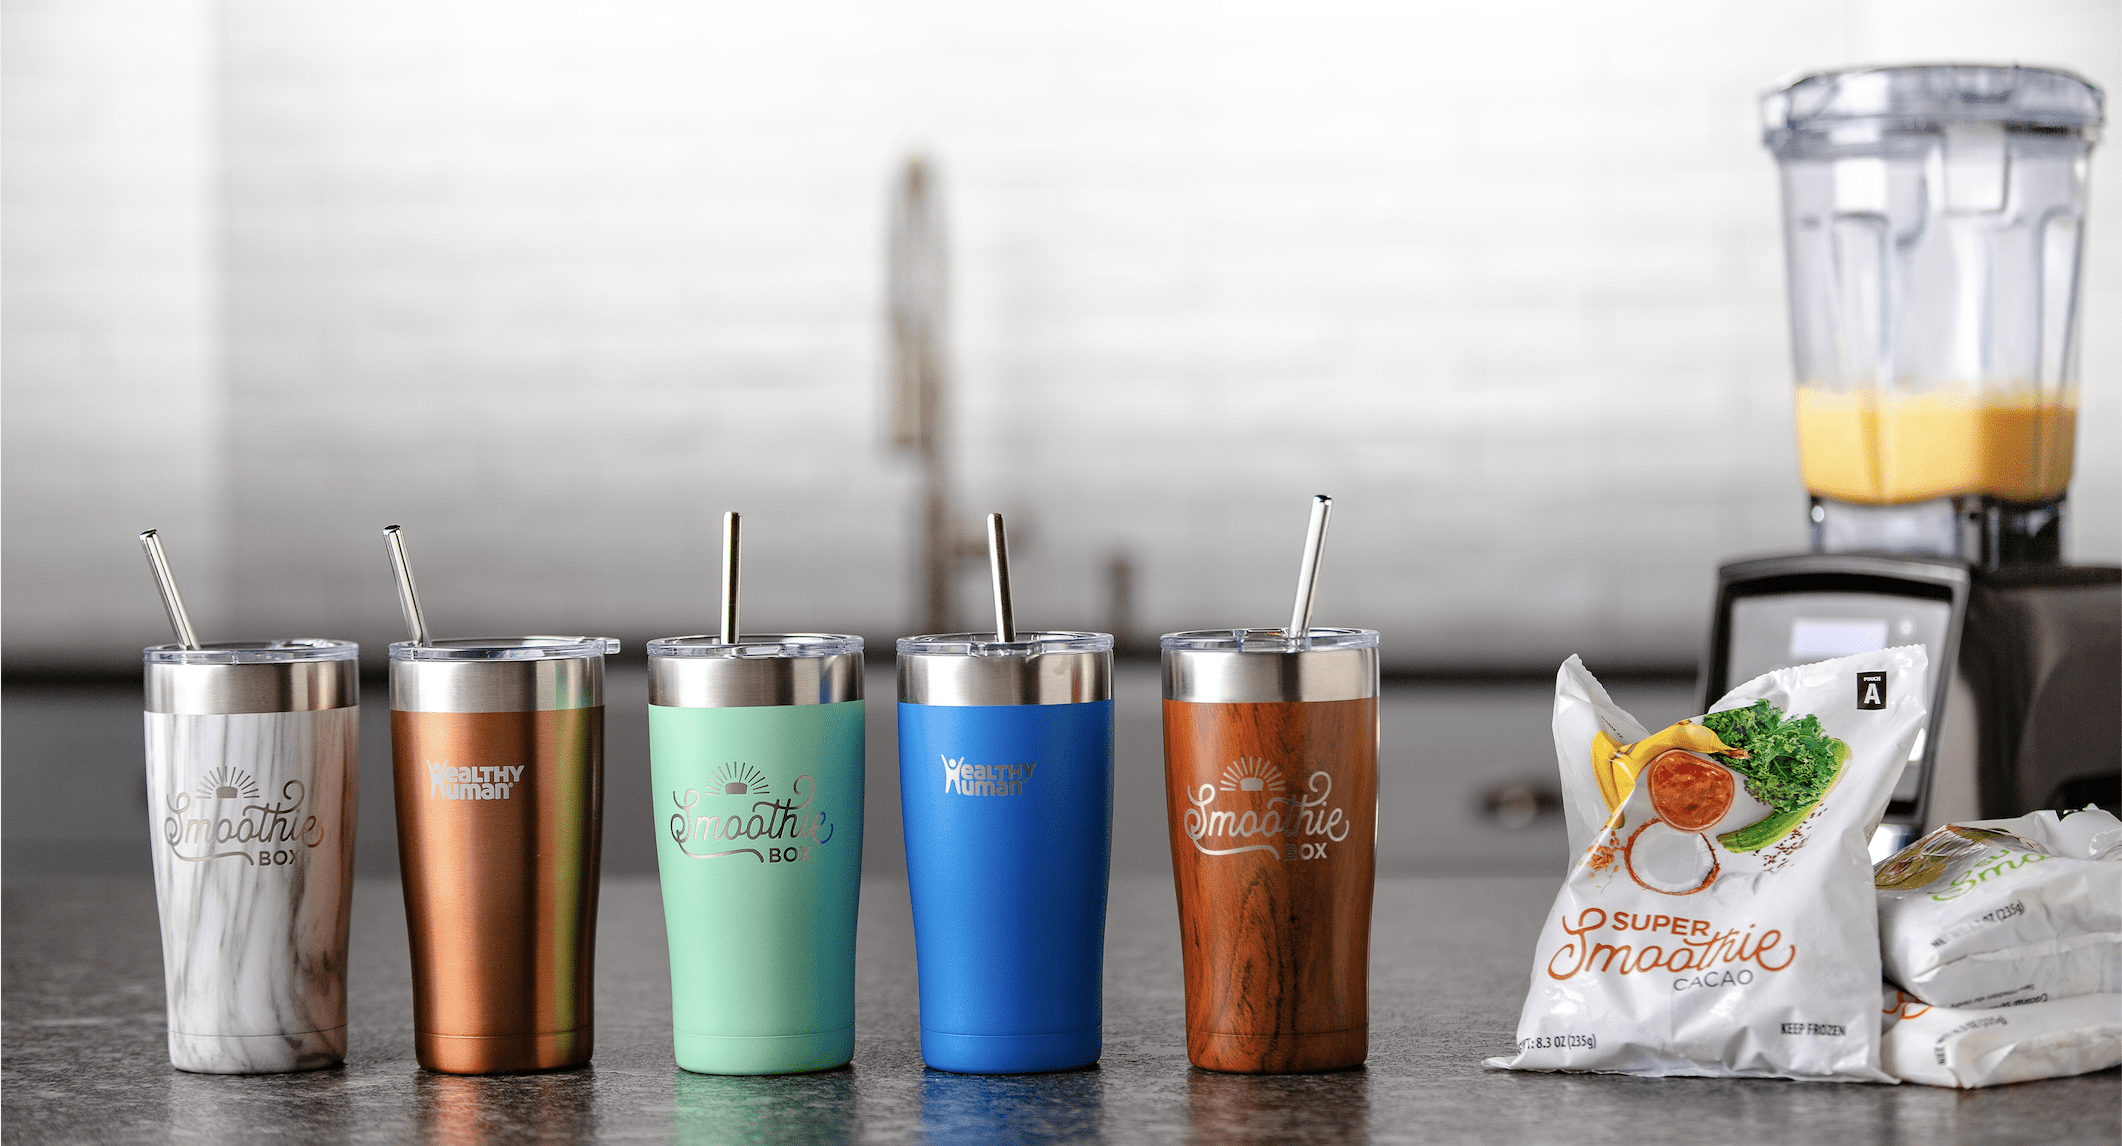 SmoothieBox Sale: Get Free Insulated Travel Mug + $10 Off For Life – LAST DAY!